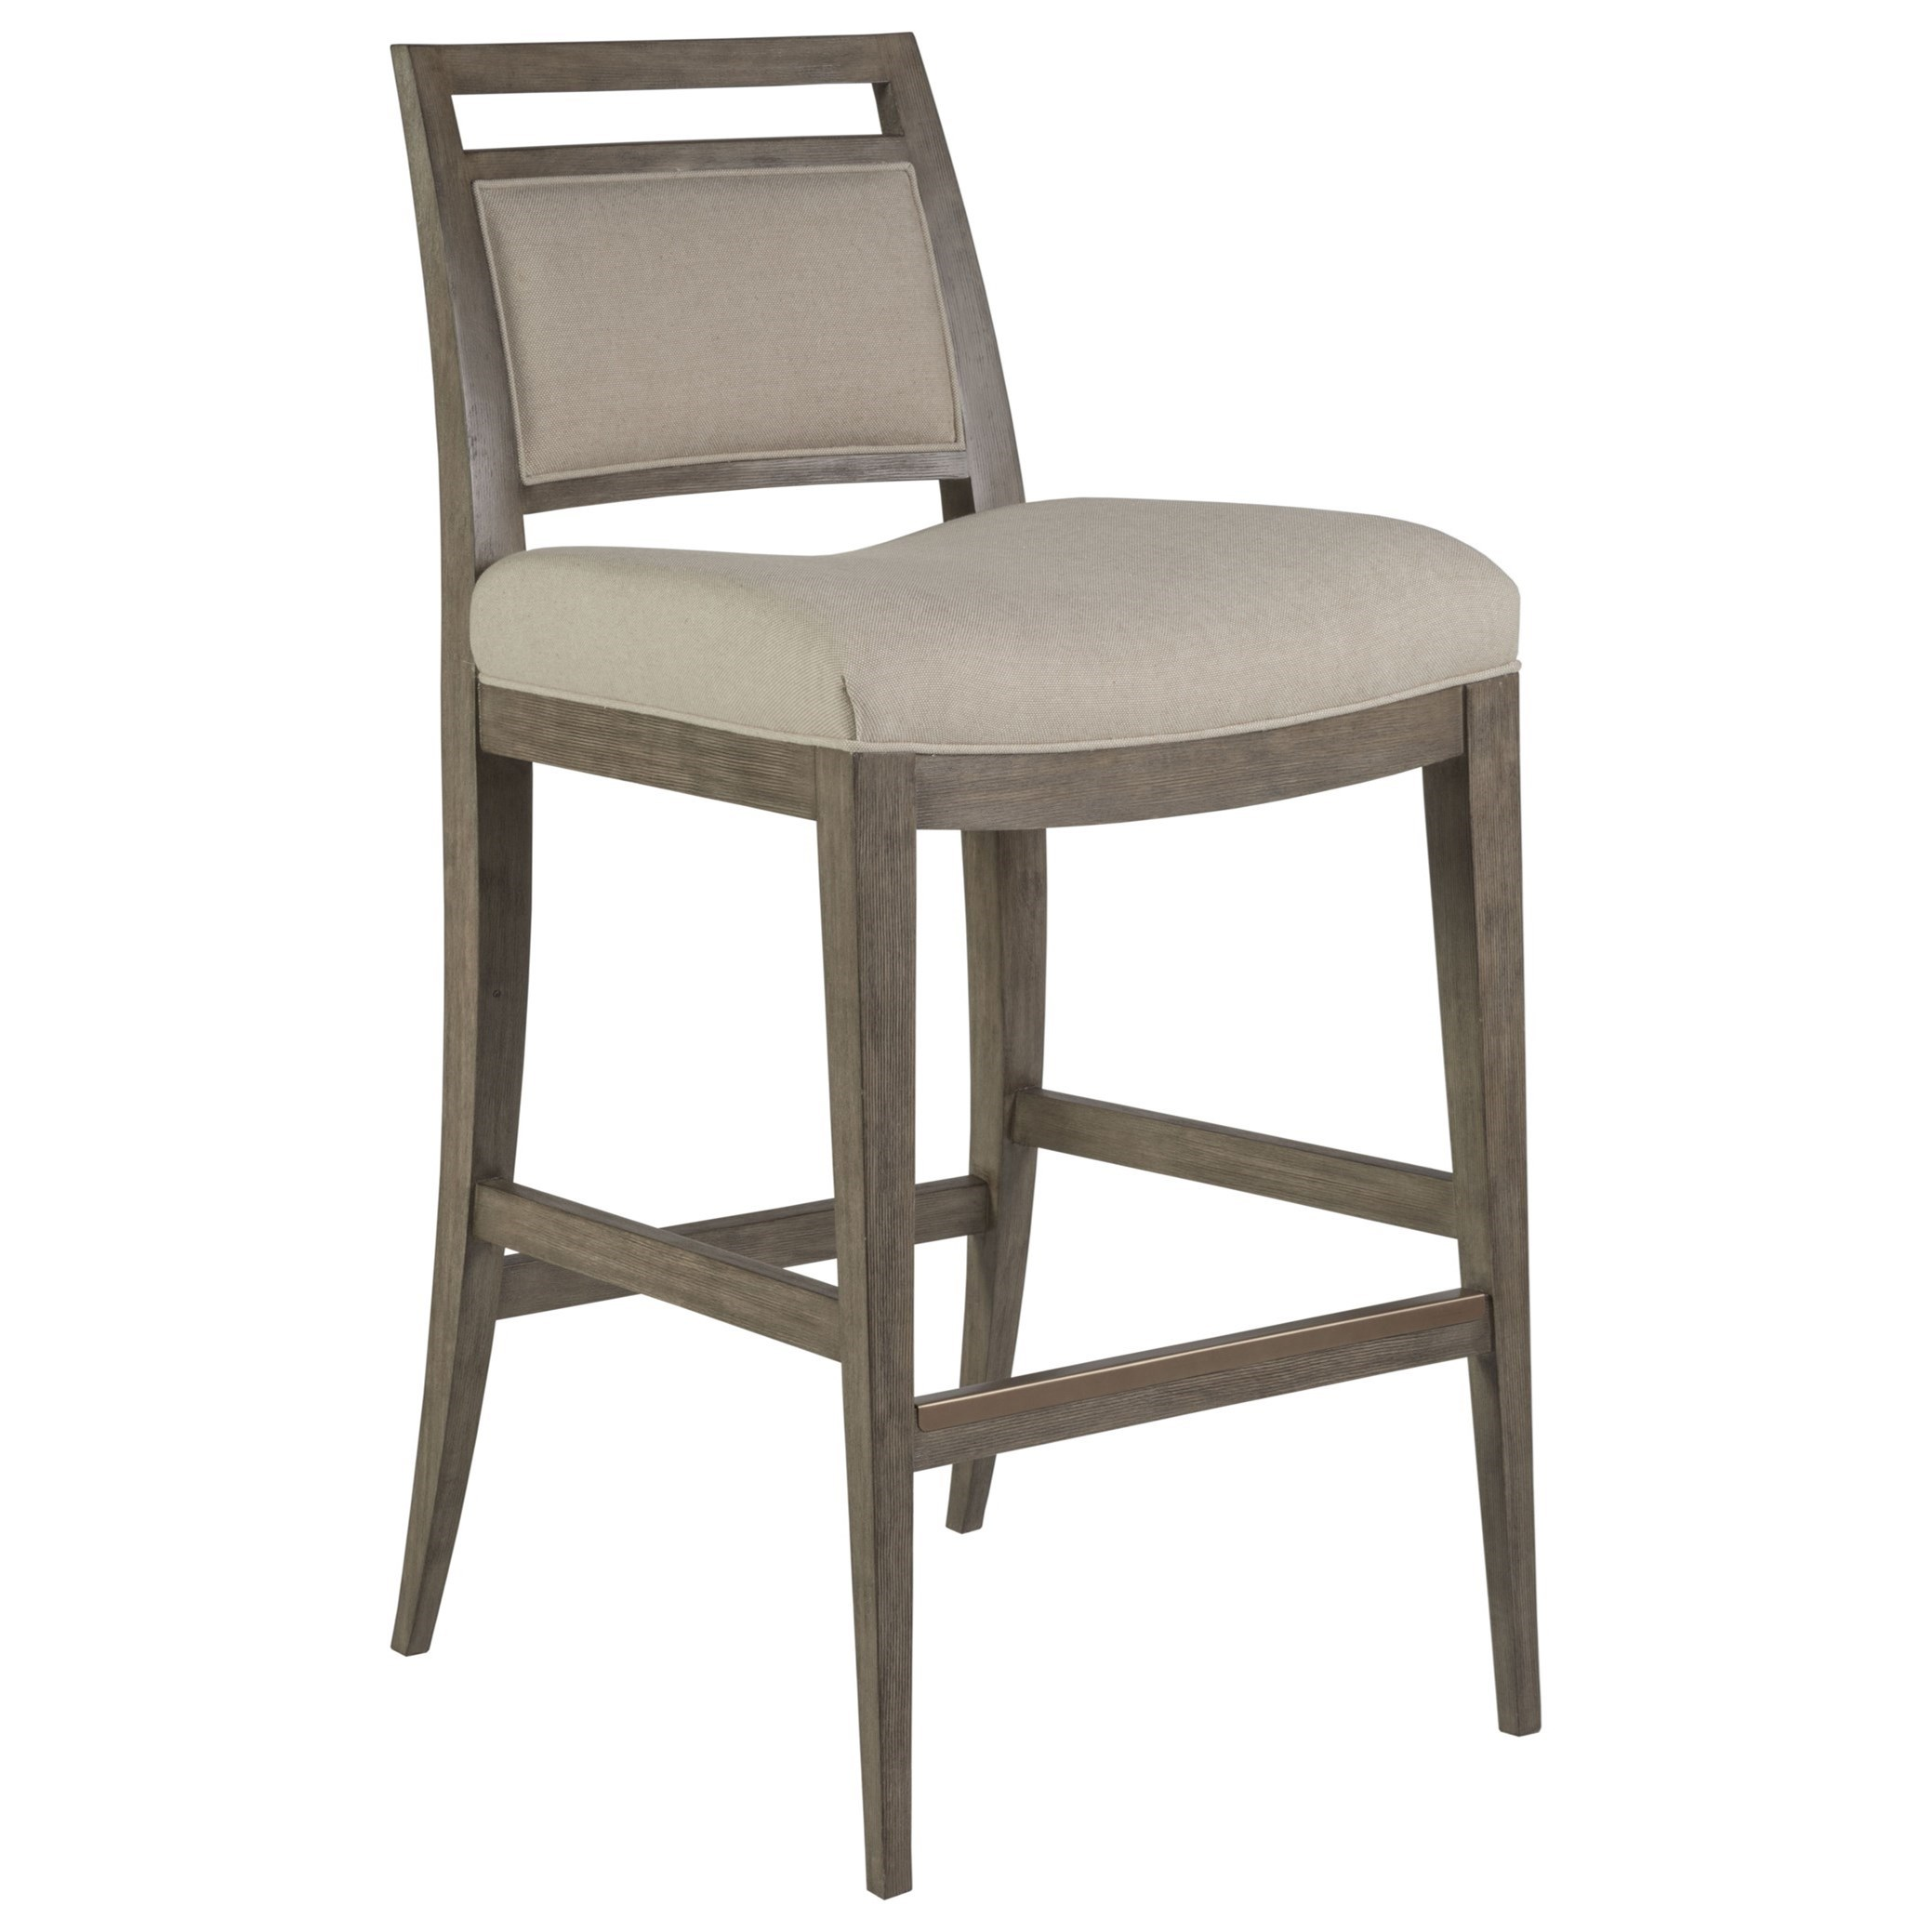 Cohesion Nico Upholstered Barstool by Artistica at Alison Craig Home Furnishings